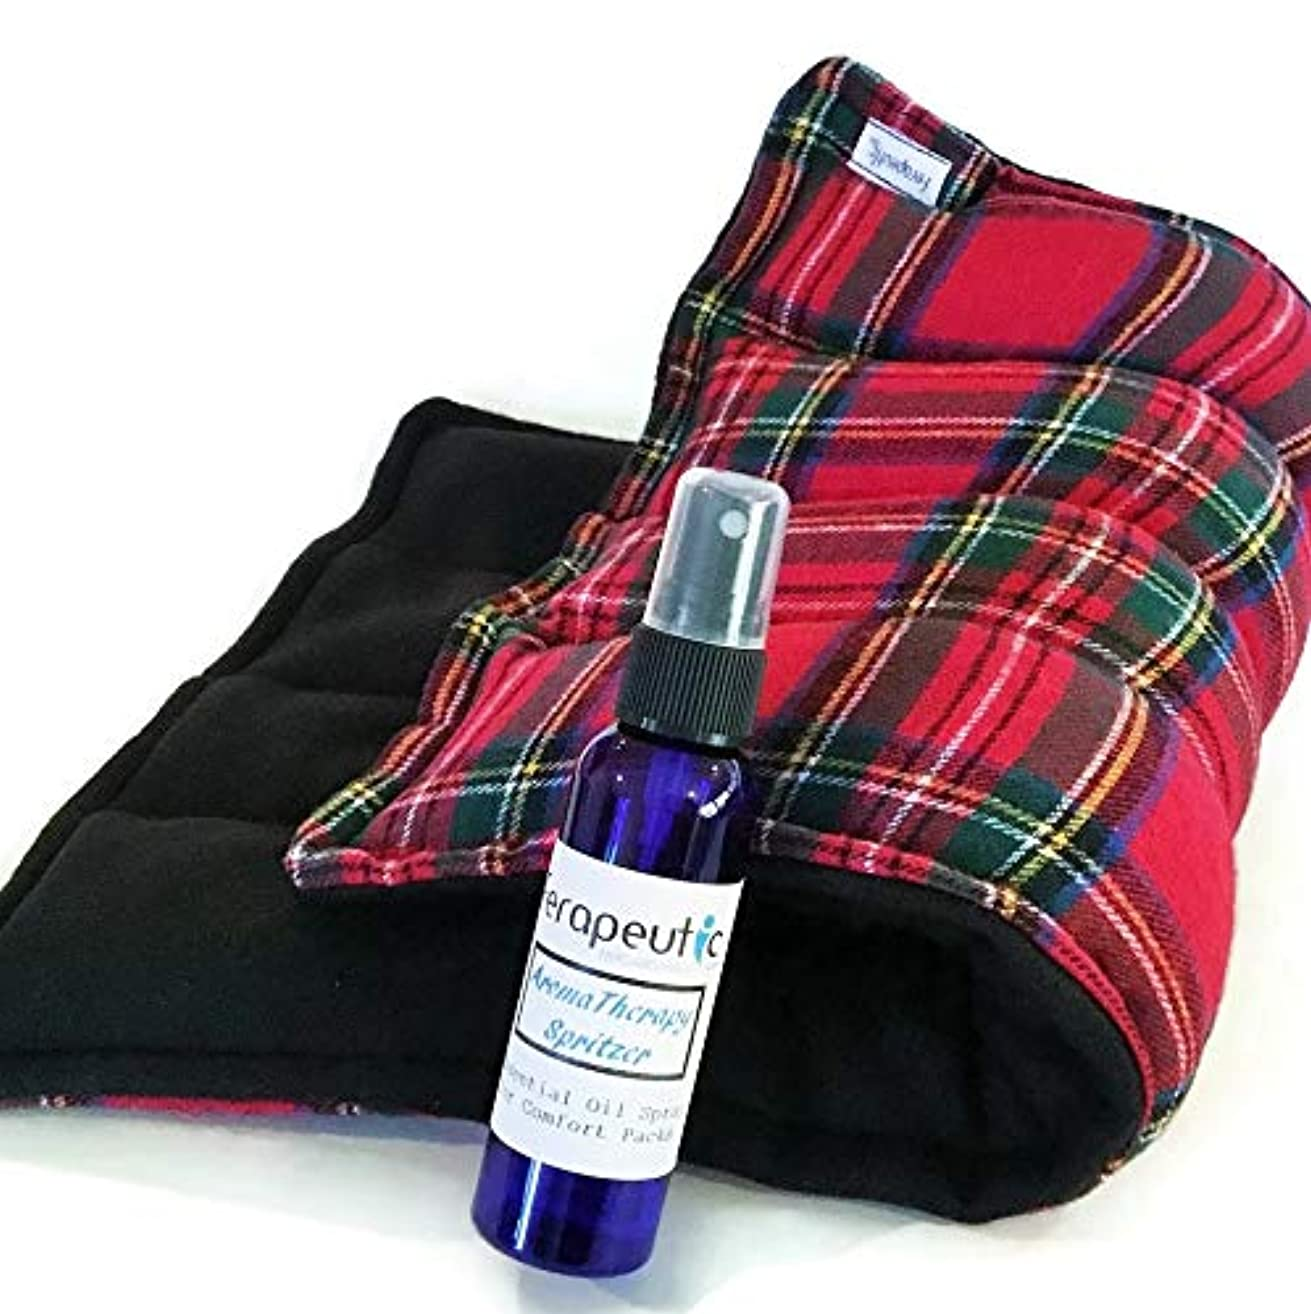 Large Heating Pad to Heat in Microwave, Filled with Flax Seed and Rice, Herbal Aromatherapy Lavender Peppermint or Eucalyptus Sinus Spray